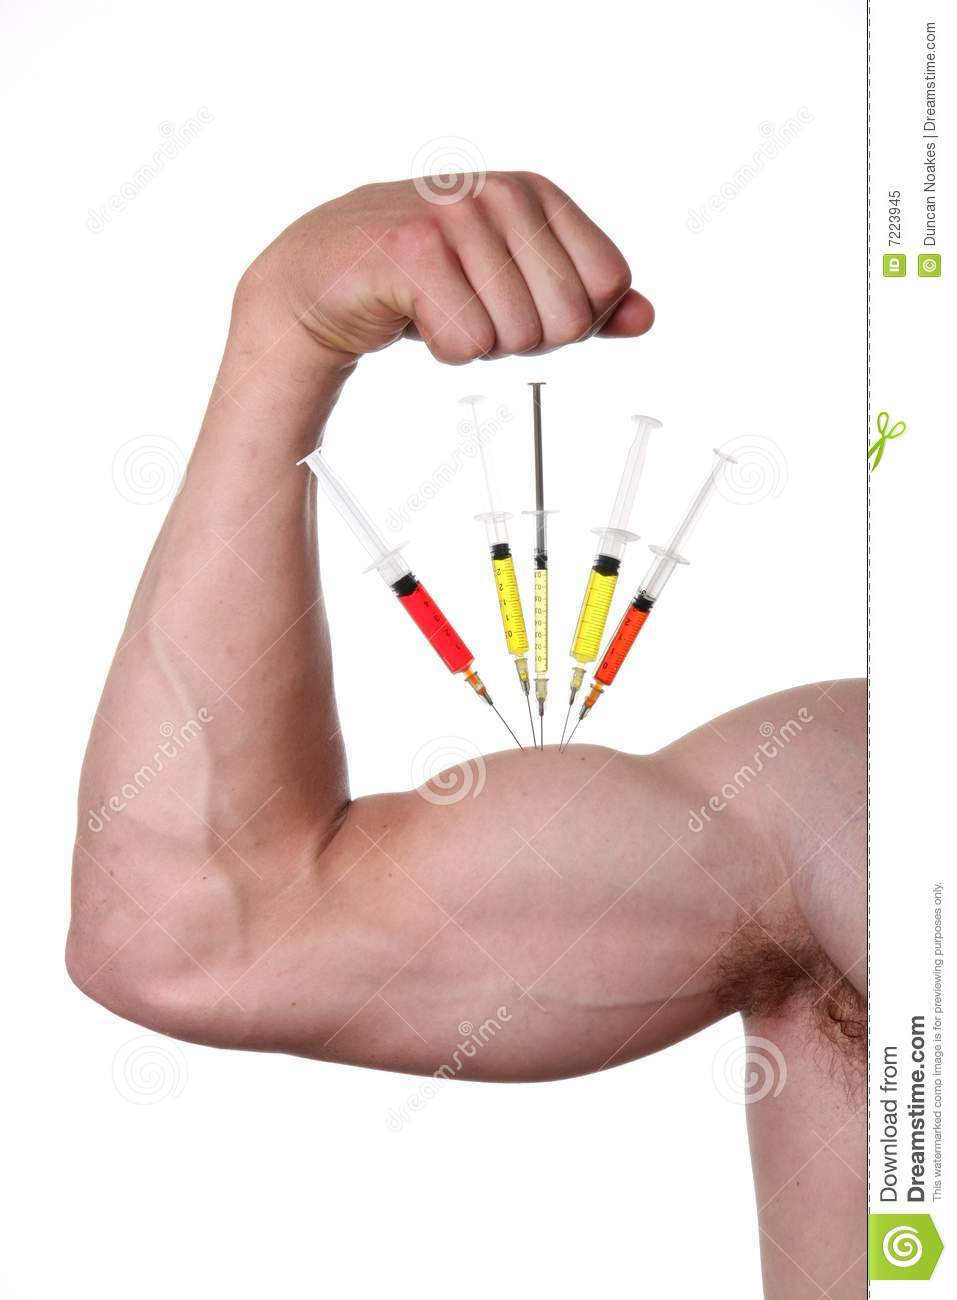 steroids how to use it effectively